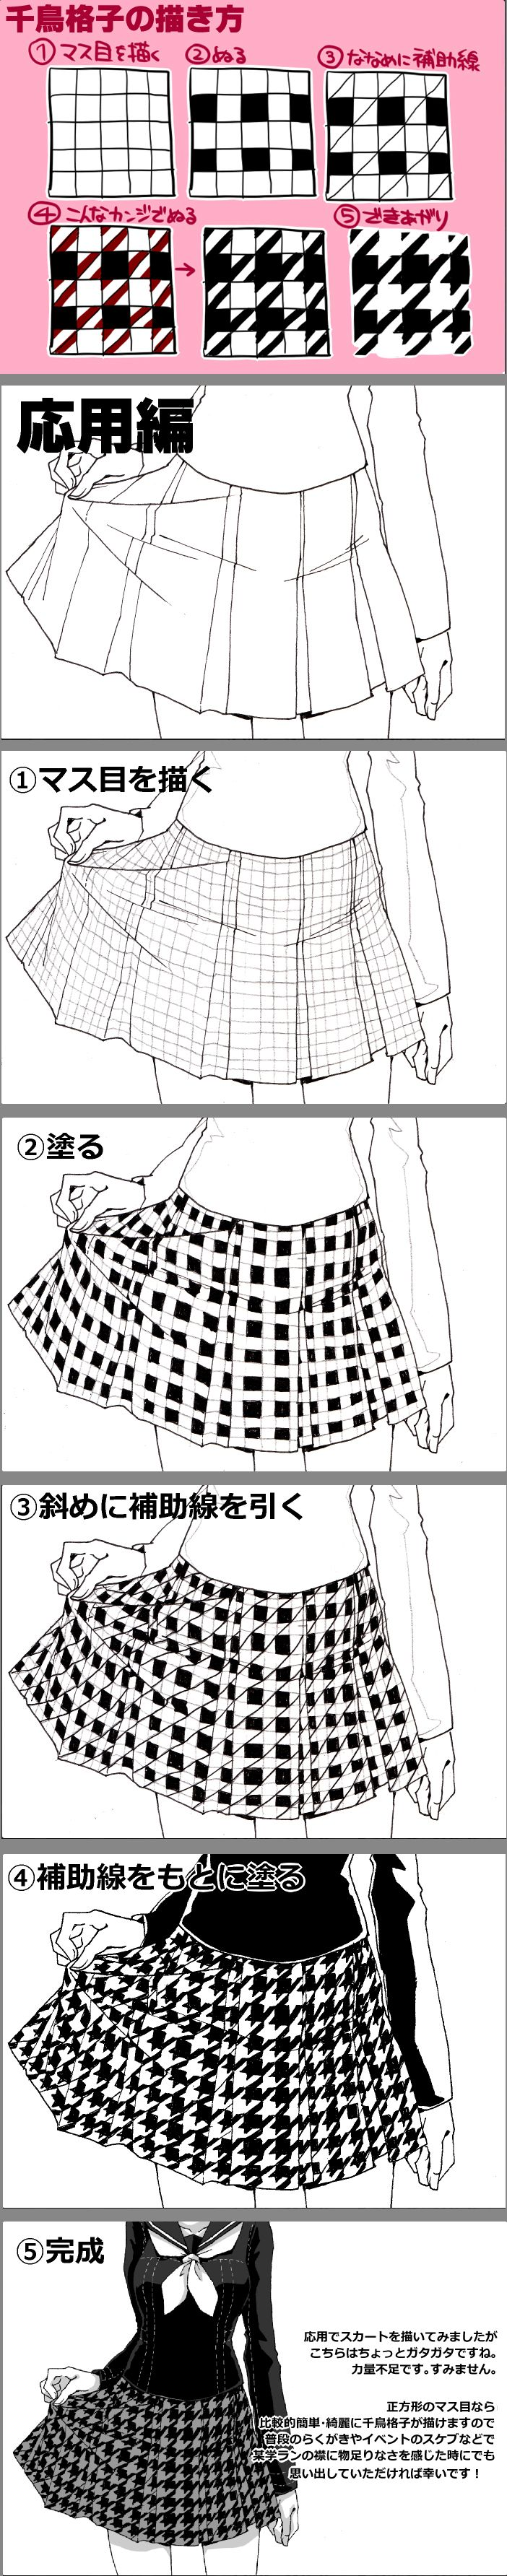 How to draw houndstooth! Source: http://www.pixiv.net/member_illust.php?mode=medium&illust_id=34194147